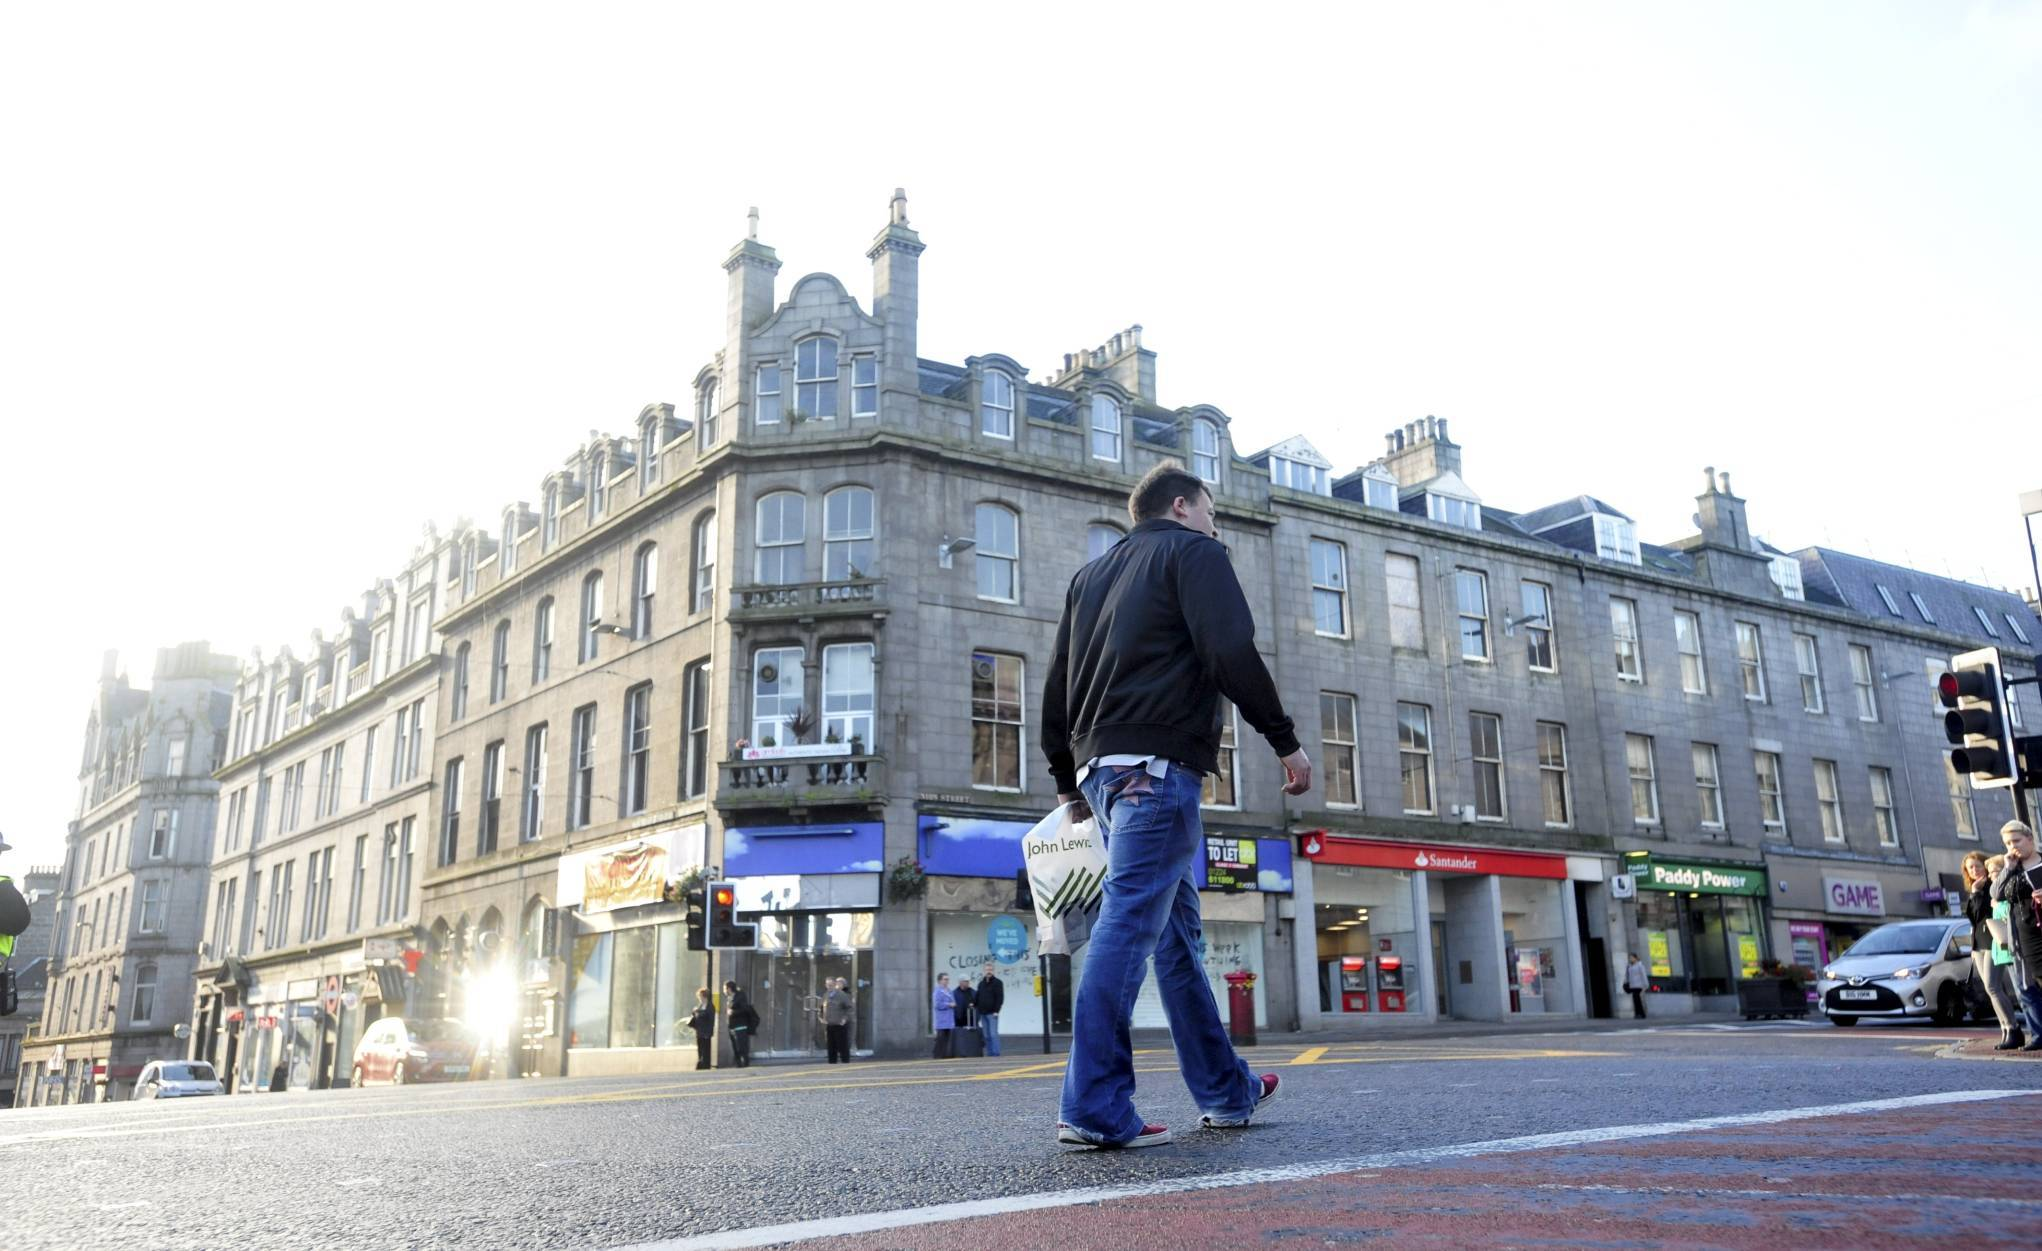 Aberdeen was named the second cleanest city in the UK.